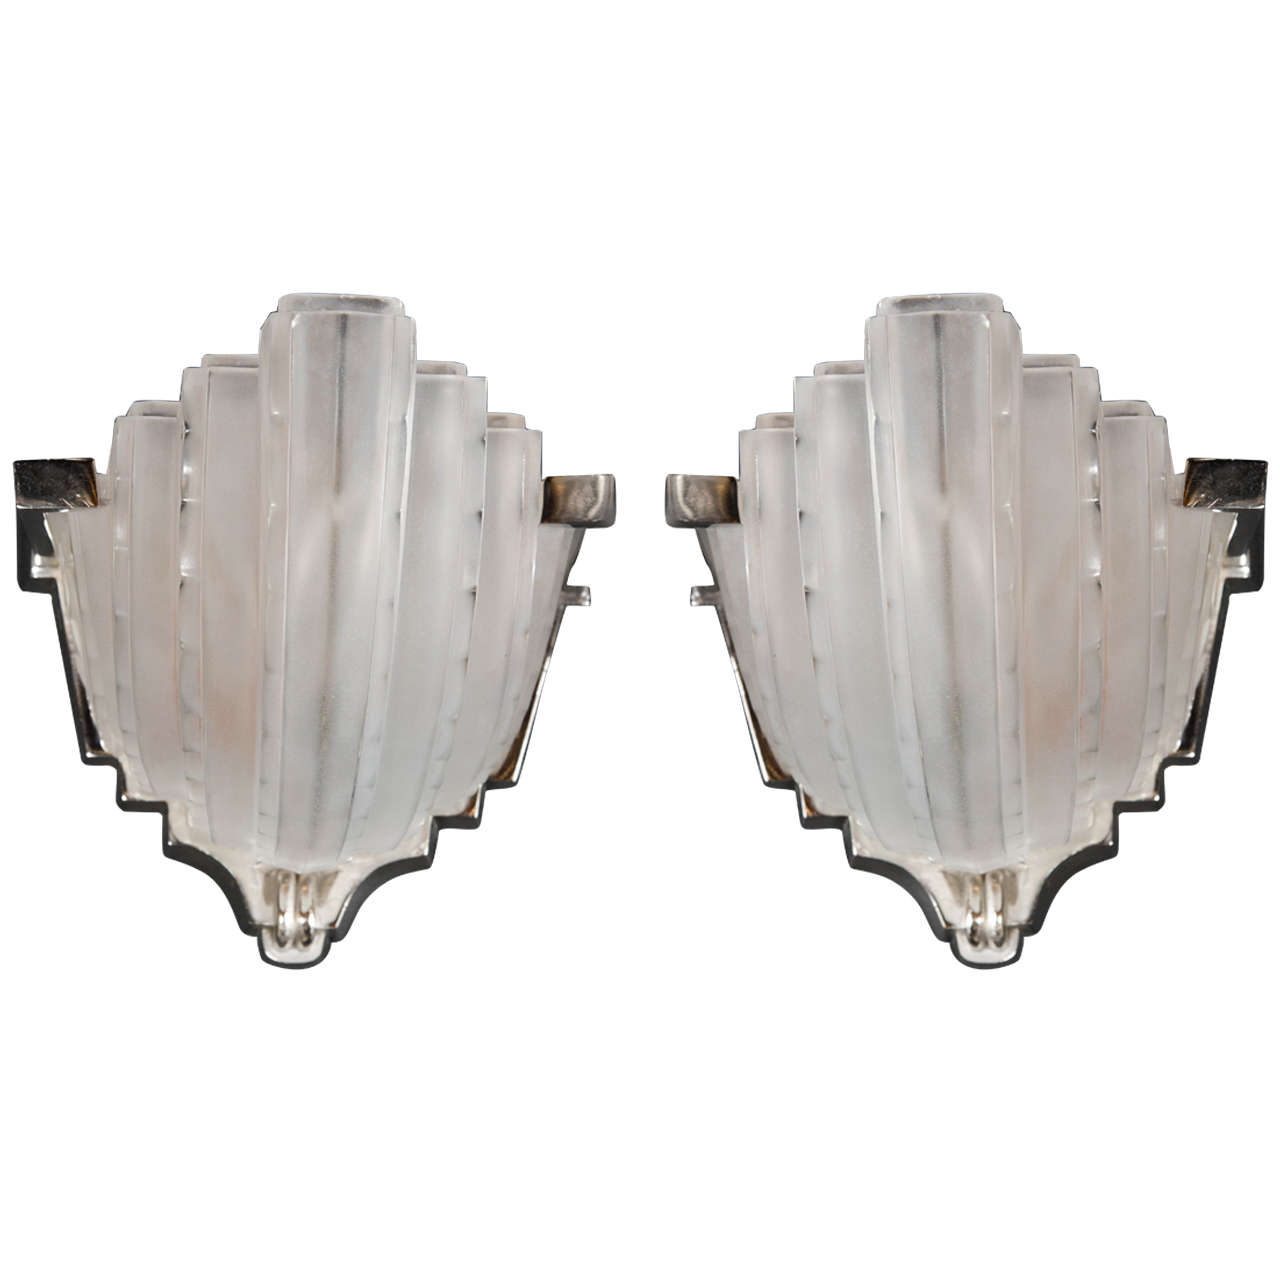 pair of art deco skyscraper style frosted glass sconces by sabino  - pair of art deco skyscraper style frosted glass sconces by sabino